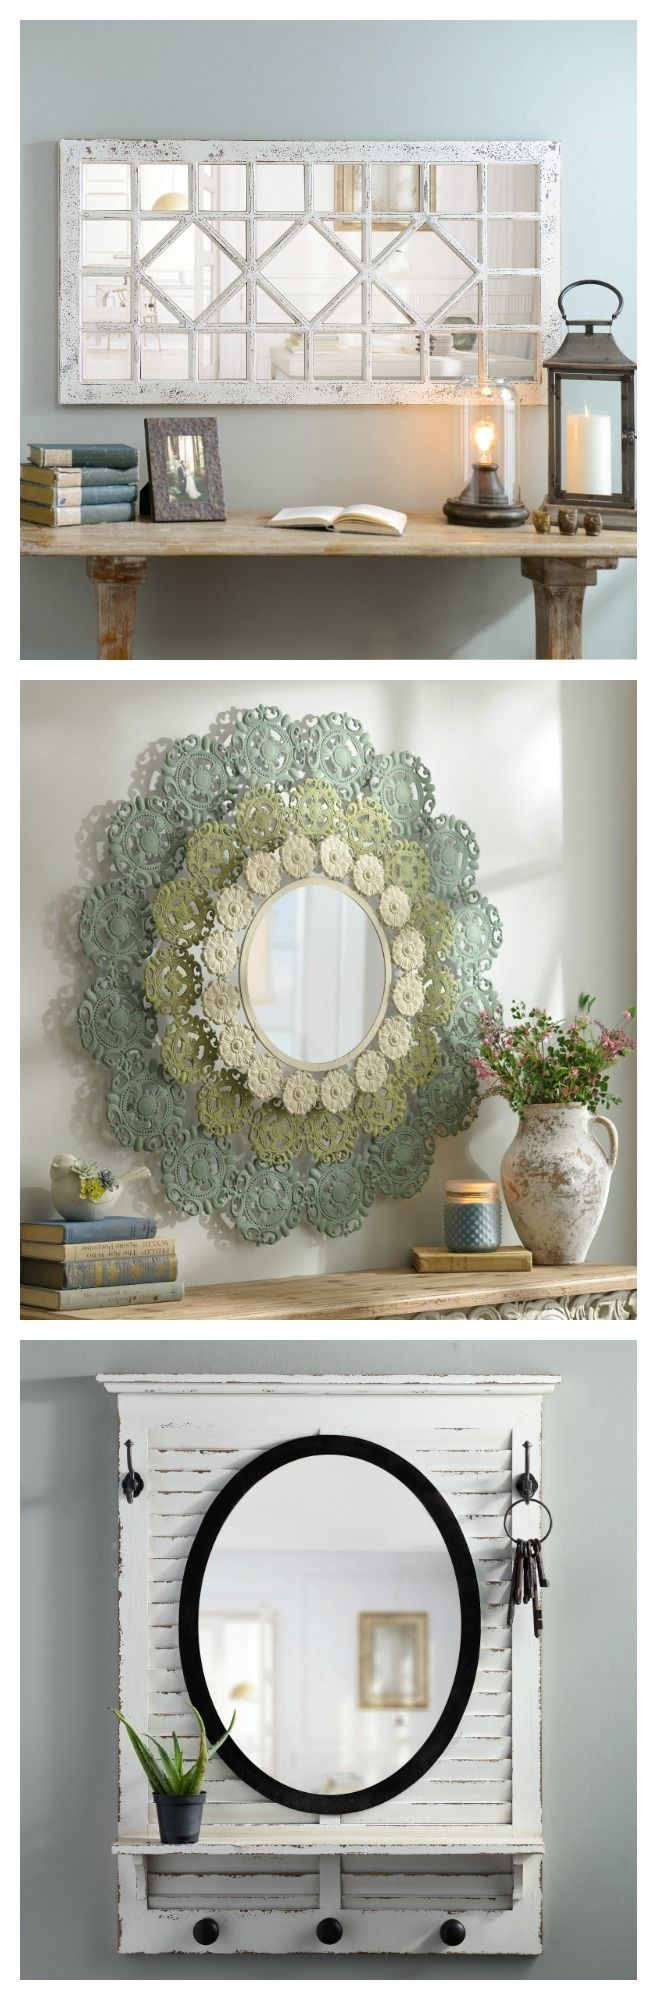 Take a moment to reflect. Shop our beautiful collection of decorative mirrors and find the perfect one to reflect your style. From frameless to vintage to metal and classic, they all add depth and charm to any wall. Enjoy 20% off ALL wall mirrors through 9/5!